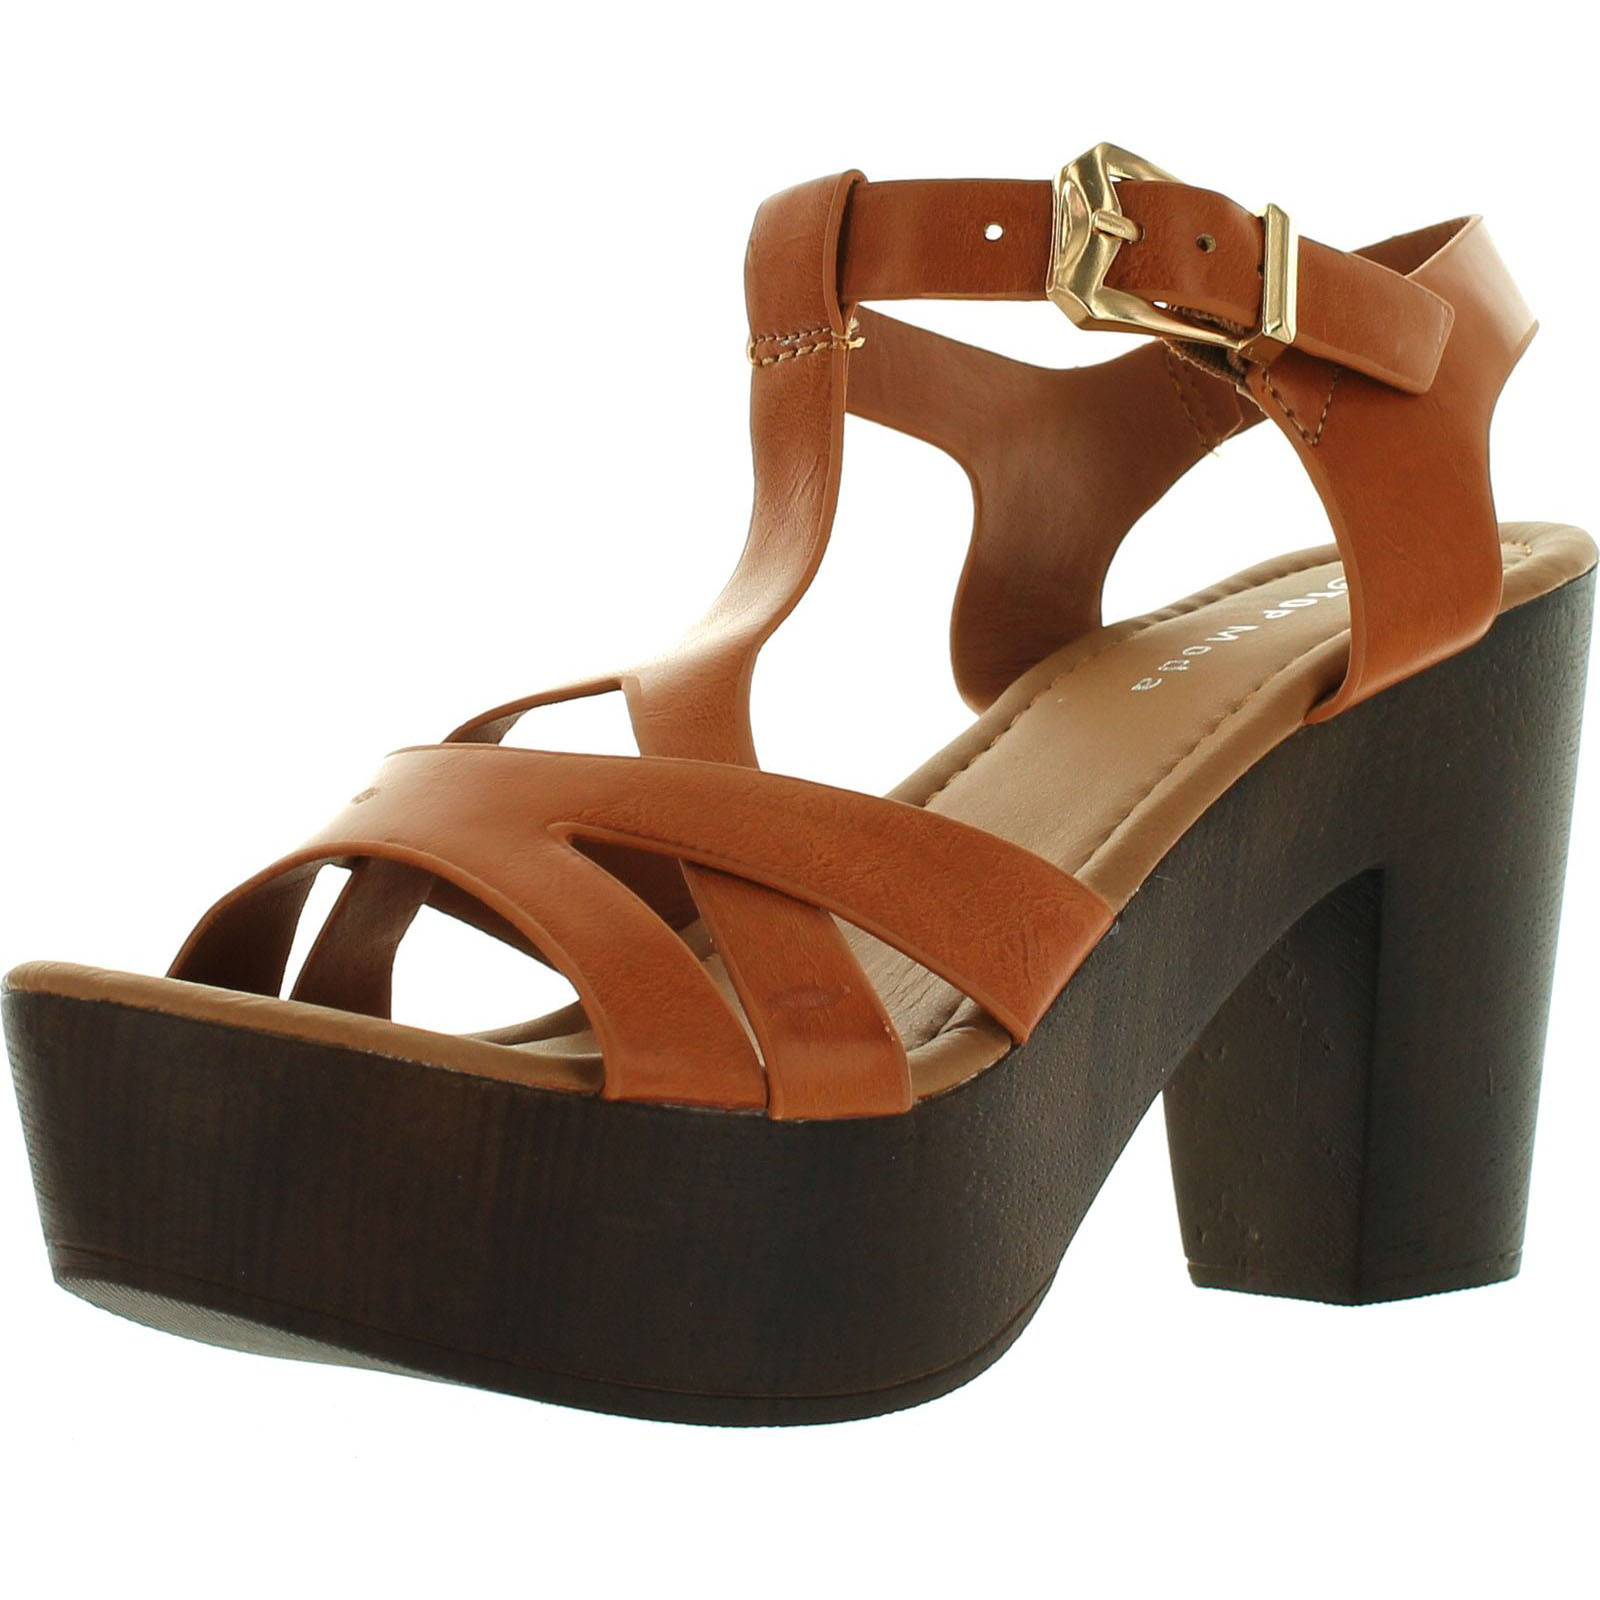 Top Moda Womens Pony-9 T-Strap Faux Wooden Platform Chunky Heel Sandals